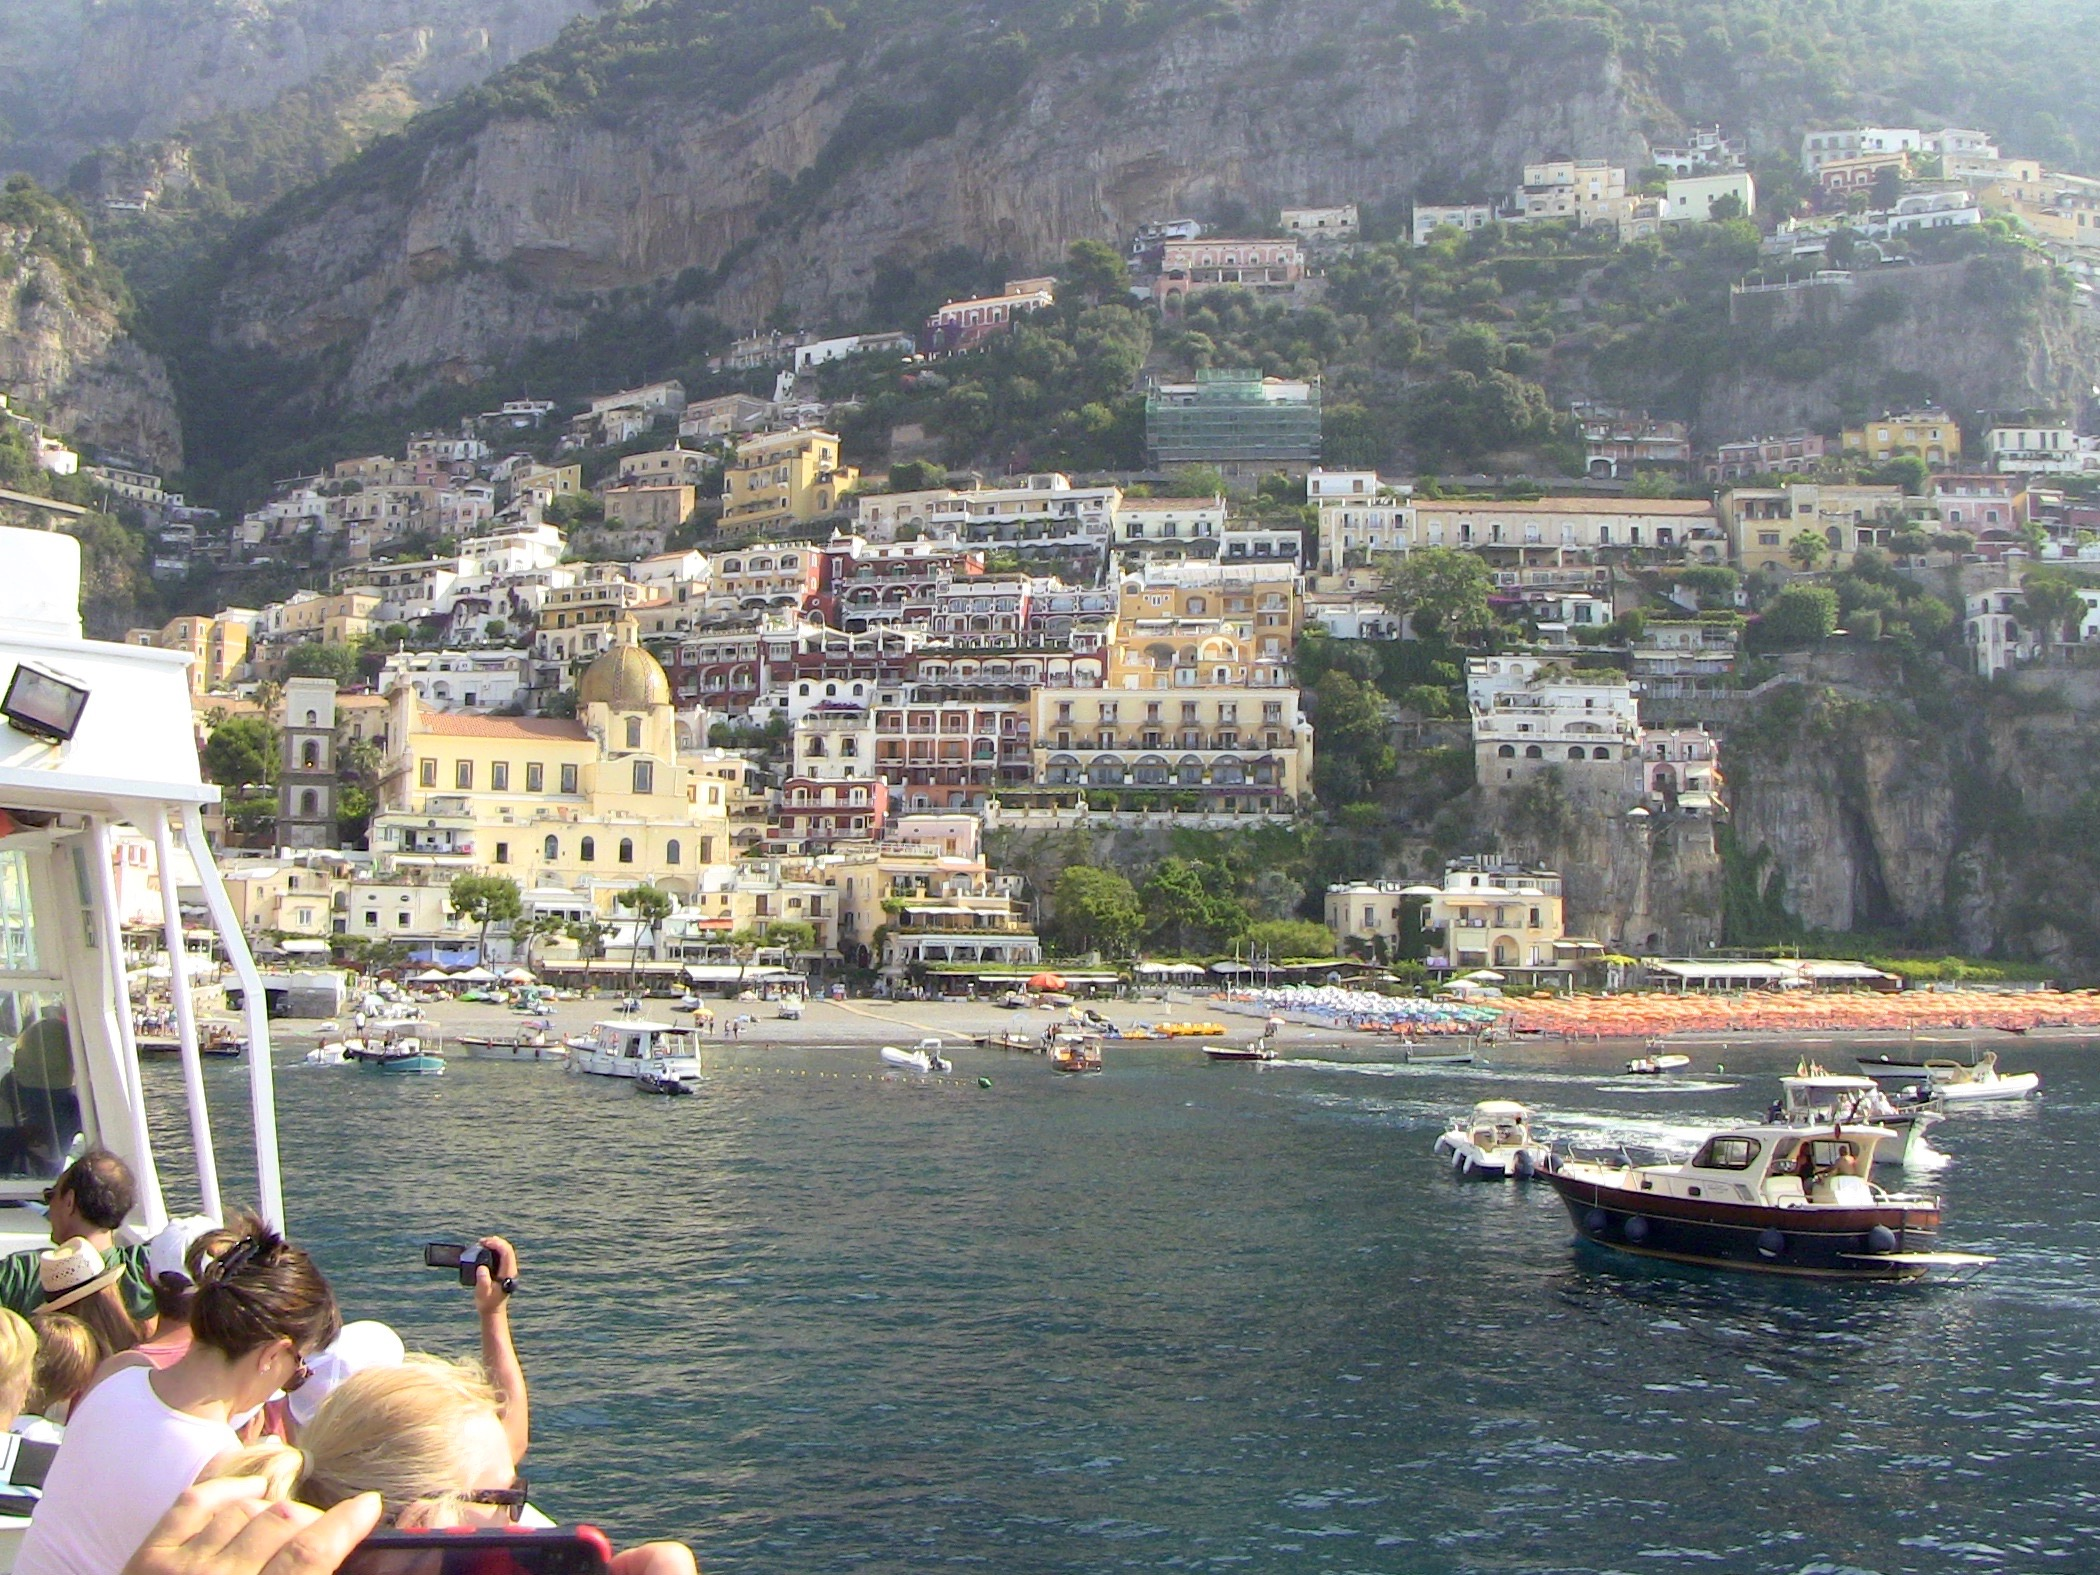 44 Positano View from the sea Italy 2015.jpg